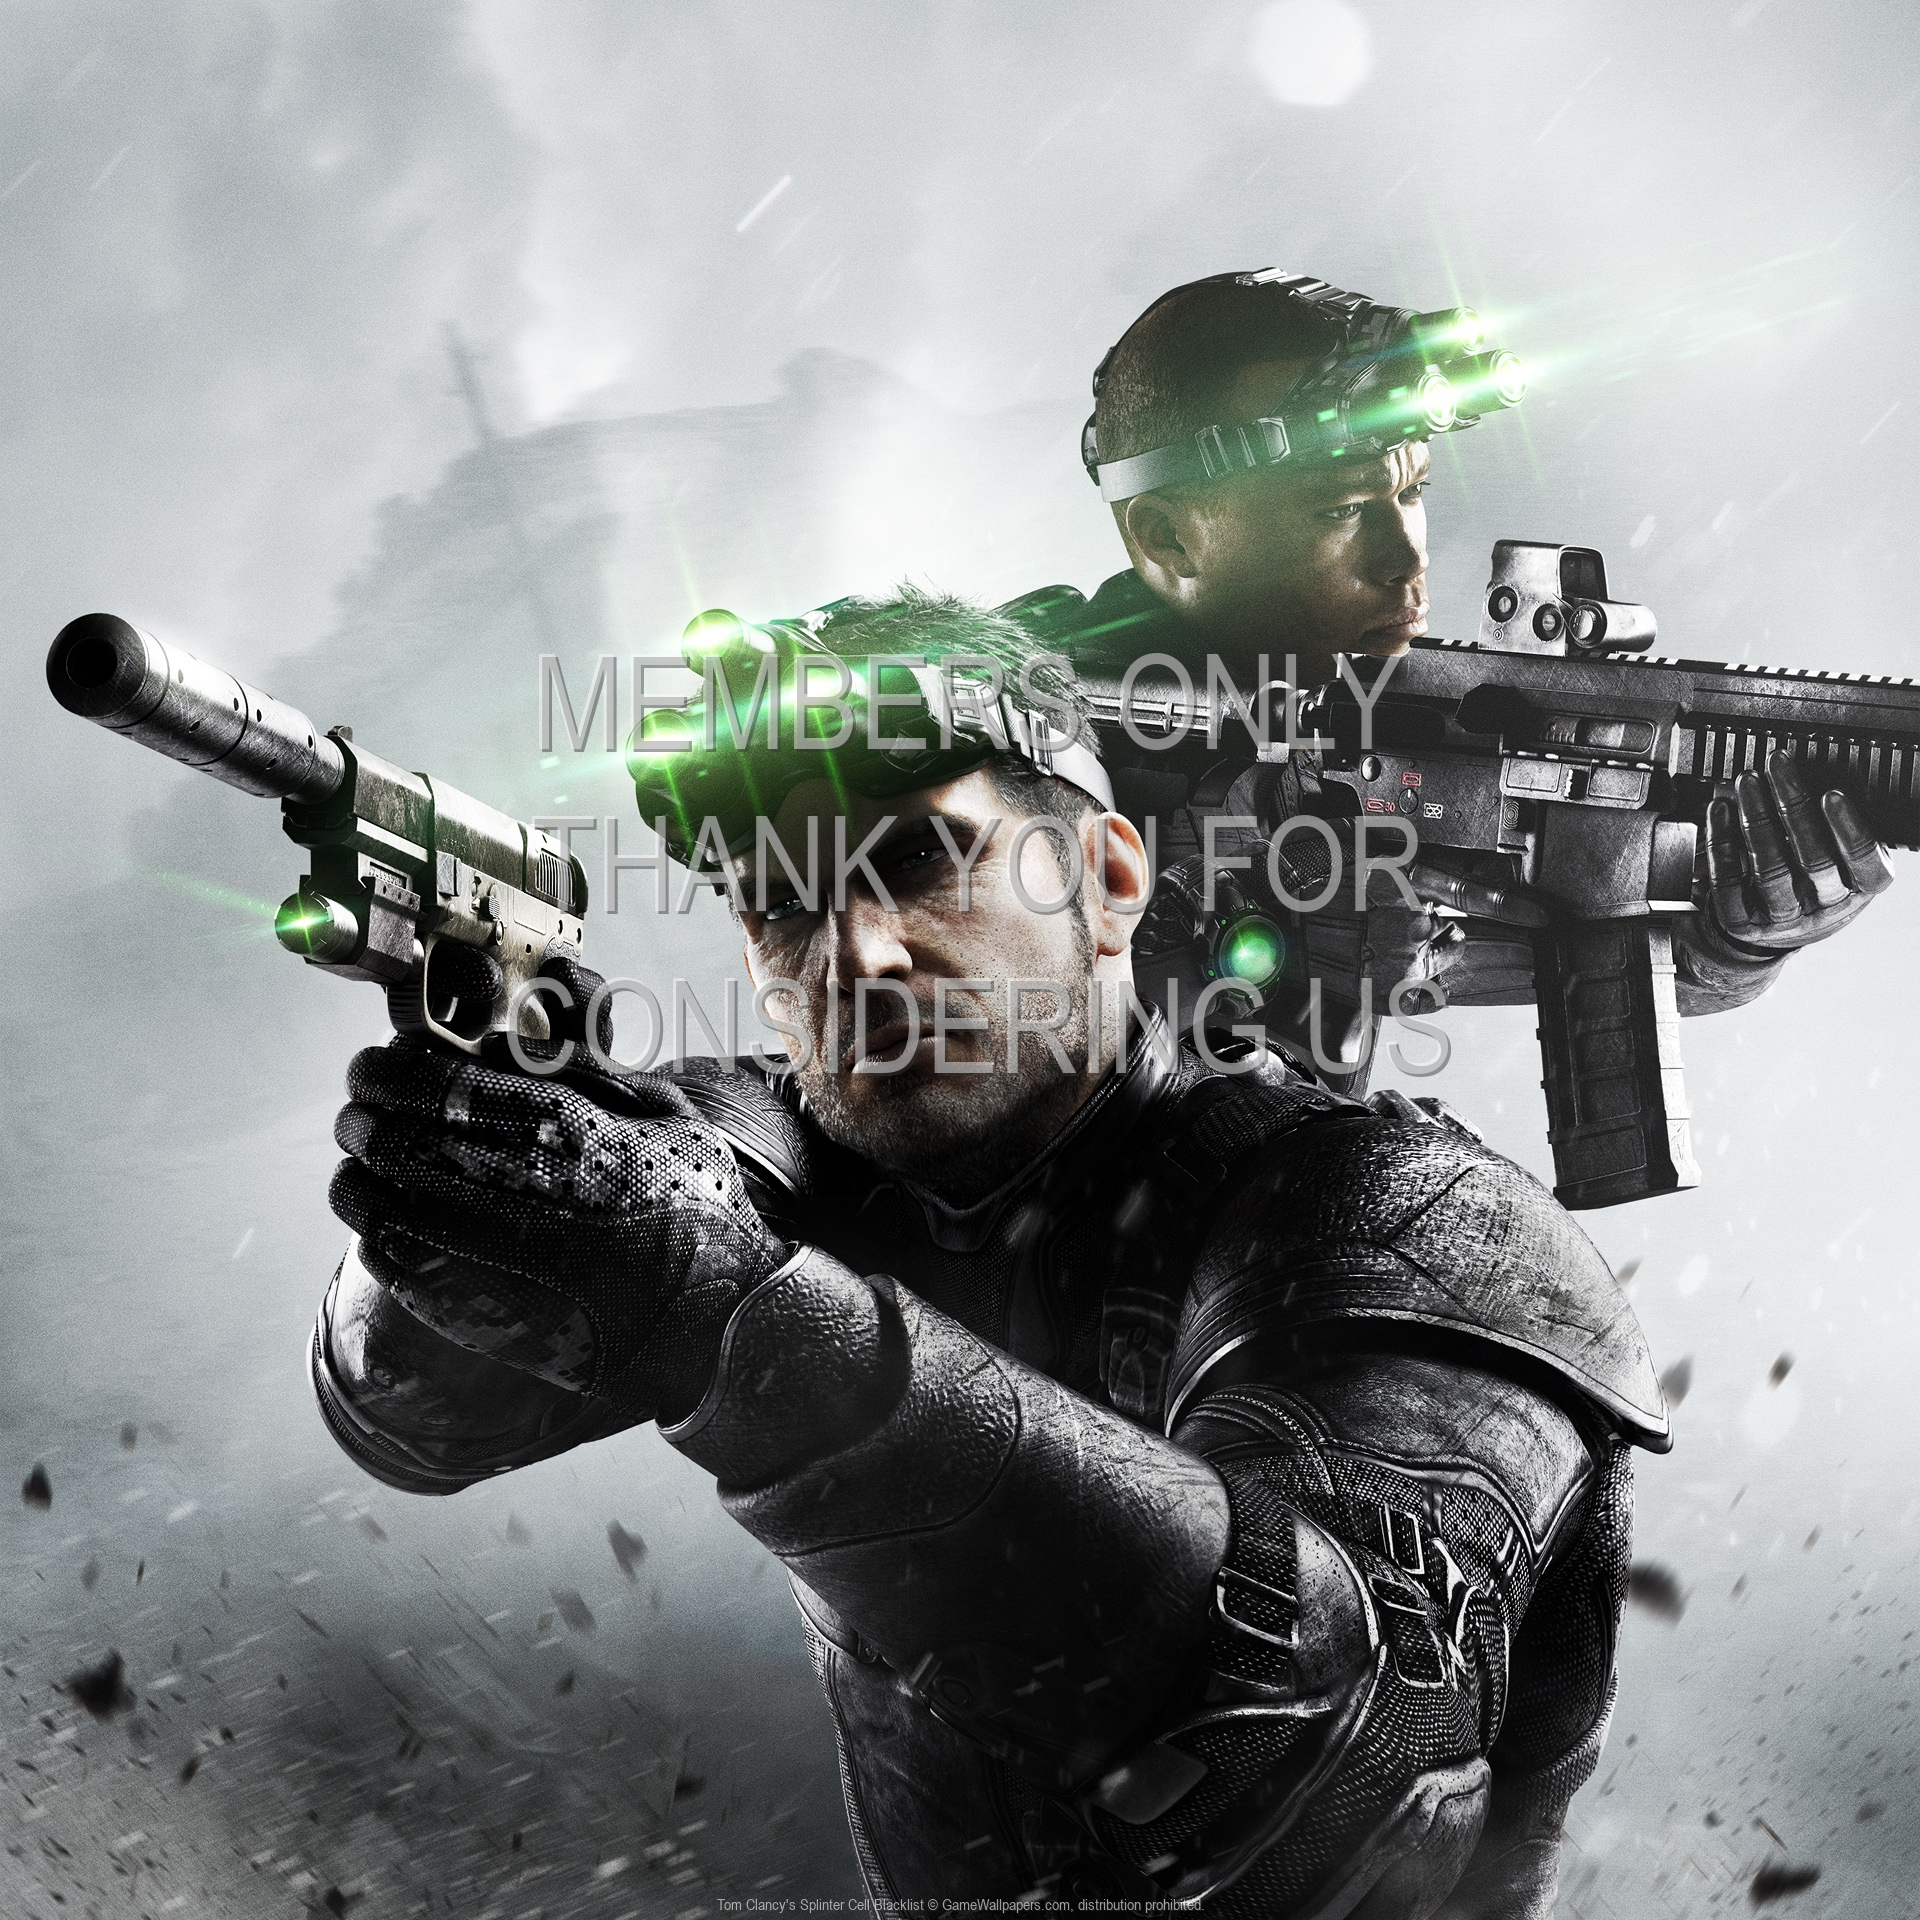 Tom Clancy's Splinter Cell: Blacklist 1920x1080 Handy Hintergrundbild 06